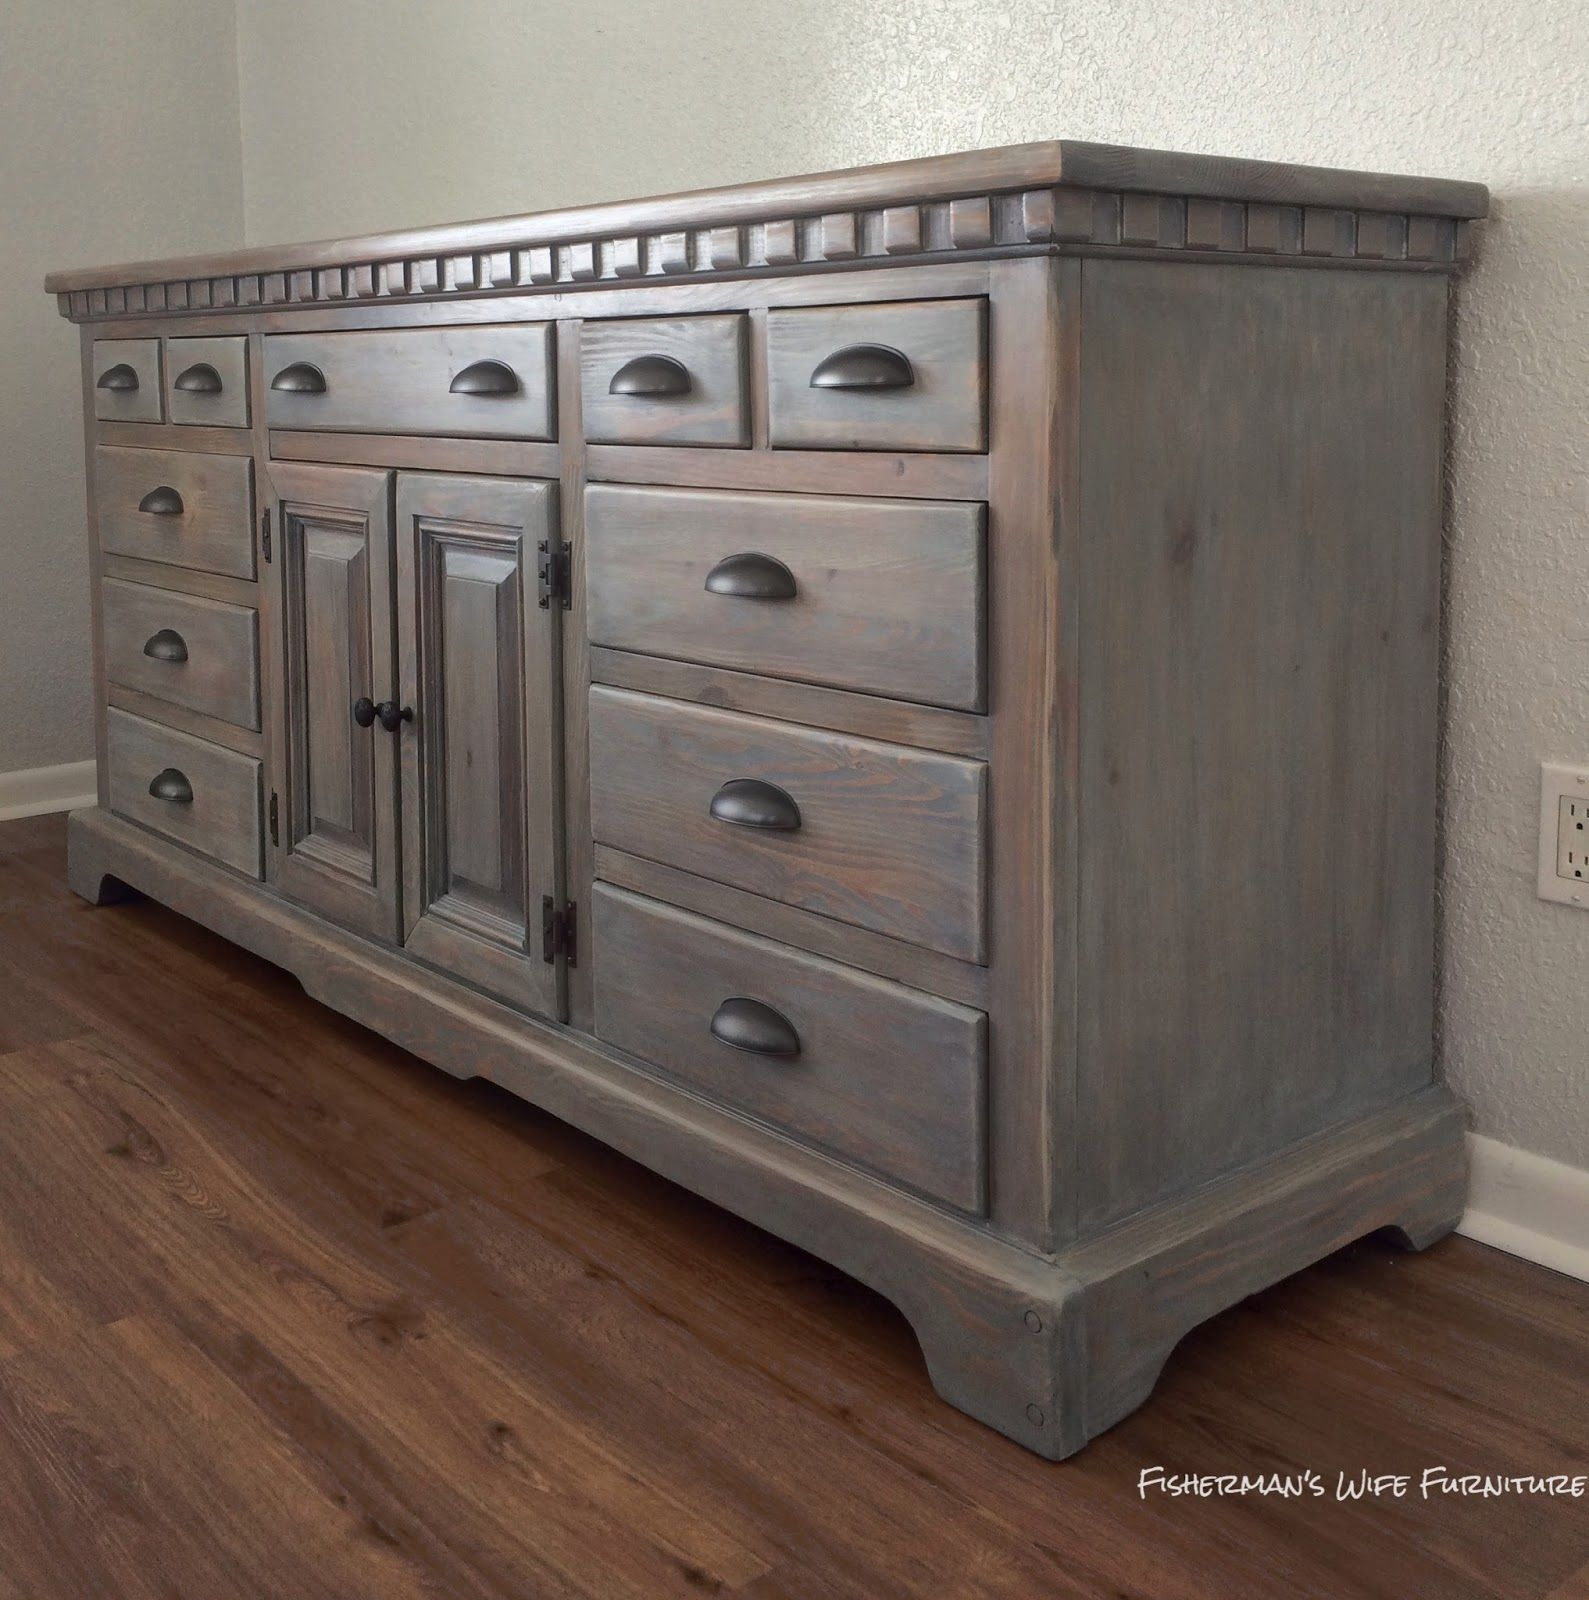 For This Finished I Used Rust Oleum Weathered Gray Stain